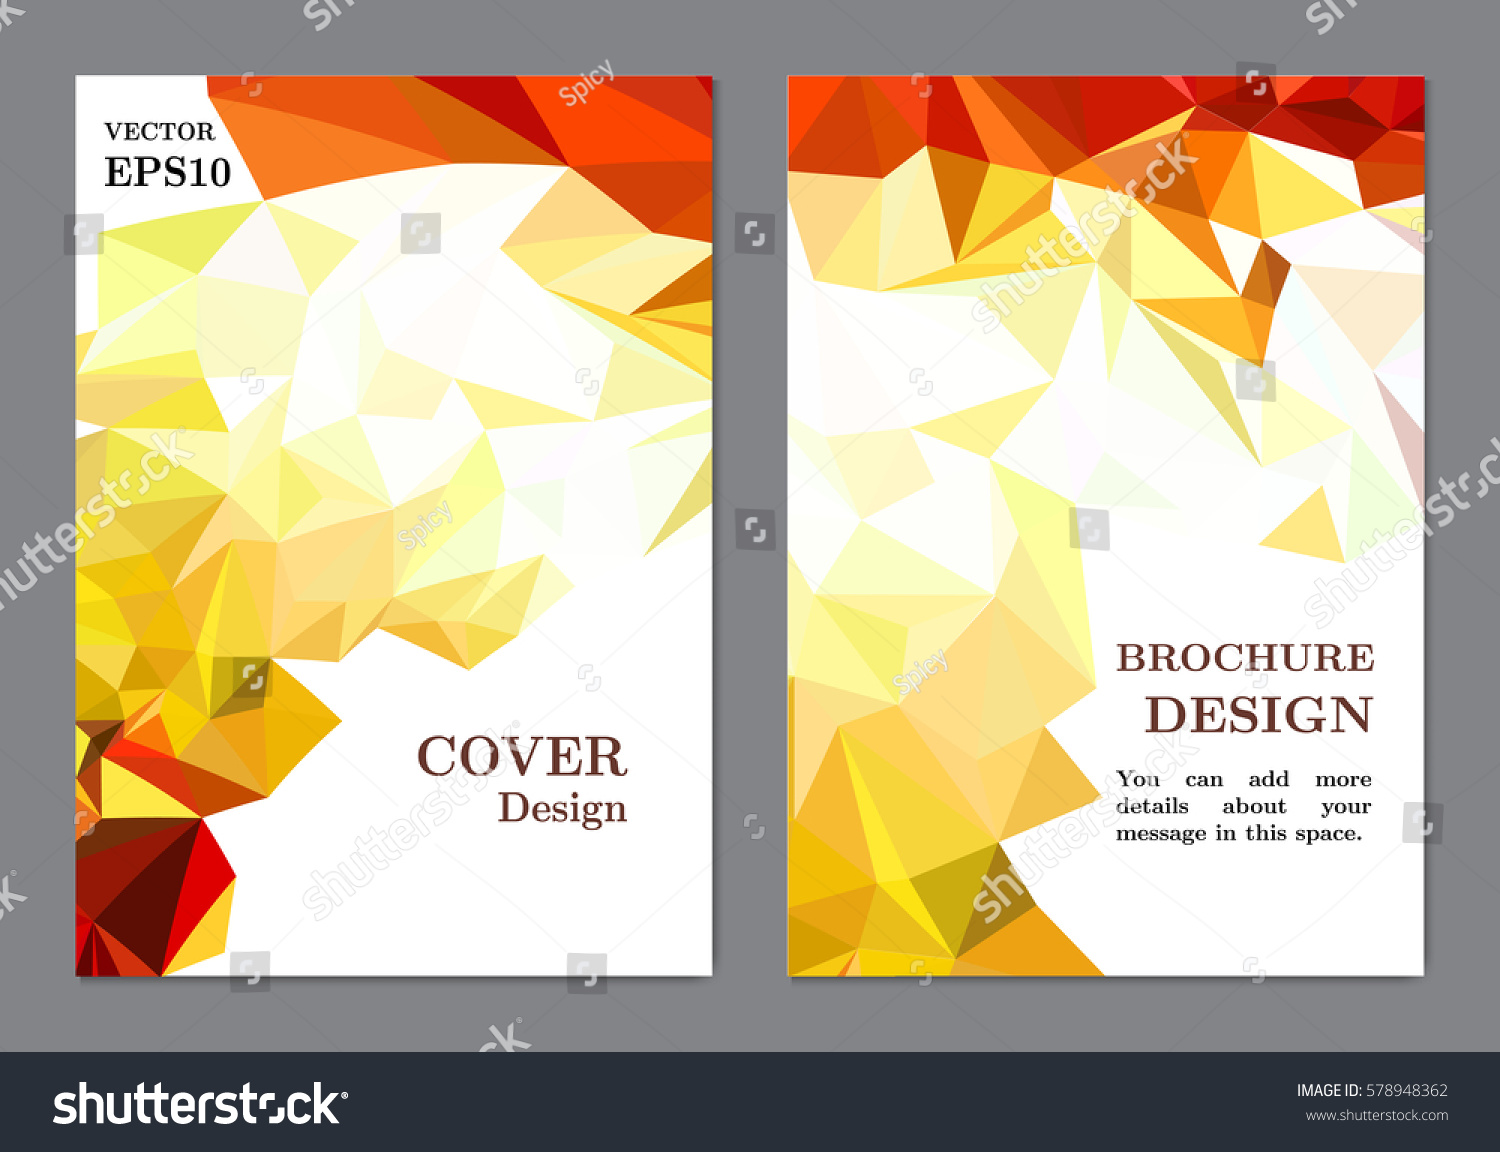 Business Book Cover Vector : Background business book cover design template stock